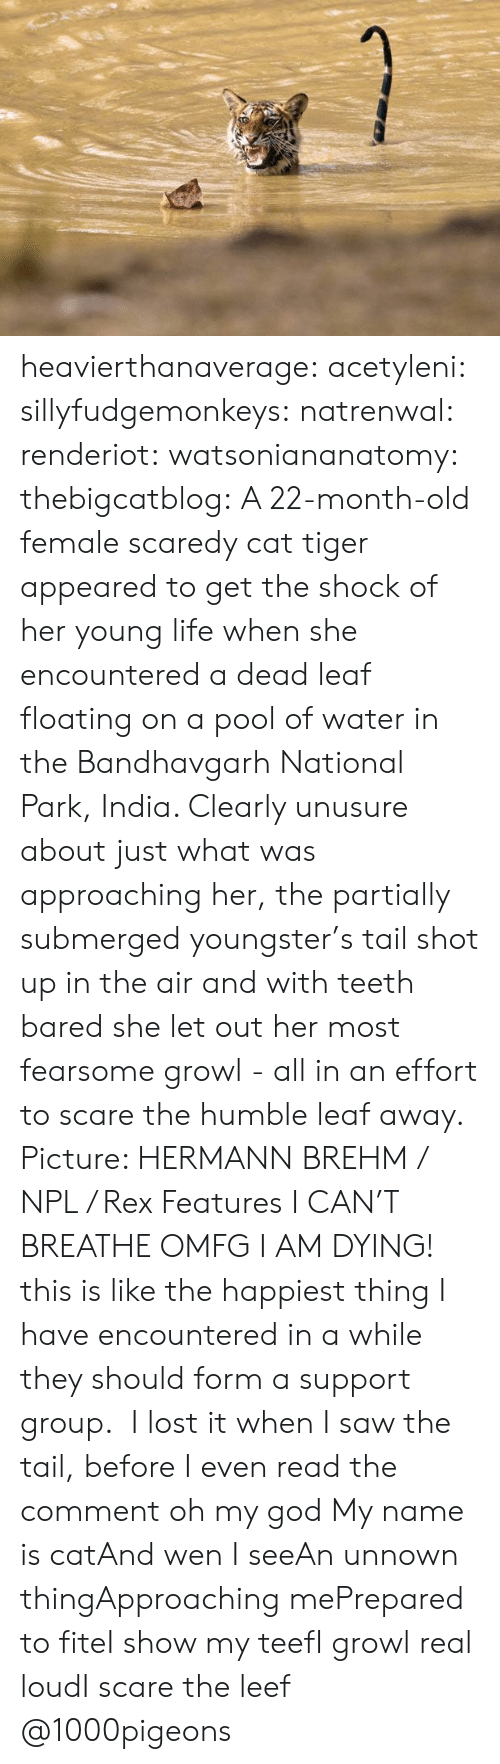 Teef: heavierthanaverage: acetyleni:  sillyfudgemonkeys:  natrenwal:  renderiot:  watsoniananatomy:  thebigcatblog:  A 22-month-old female scaredy cat tiger appeared to get the shock of her young life when she encountered a dead leaf floating on a pool of water in the Bandhavgarh National Park, India. Clearly unusure about just what was approaching her, the partially submerged youngster's tail shot up in the air and with teeth bared she let out her most fearsome growl - all in an effort to scare the humble leaf away. Picture: HERMANN BREHM / NPL / Rex Features  I CAN'T BREATHE  OMFG I AM DYING! this is like the happiest thing I have encountered in a while   they should form a support group.  I lost it when I saw the tail, before I even read the comment oh my god  My name is catAnd wen I seeAn unnown thingApproaching mePrepared to fiteI show my teefI growl real loudI scare the leef  @1000pigeons